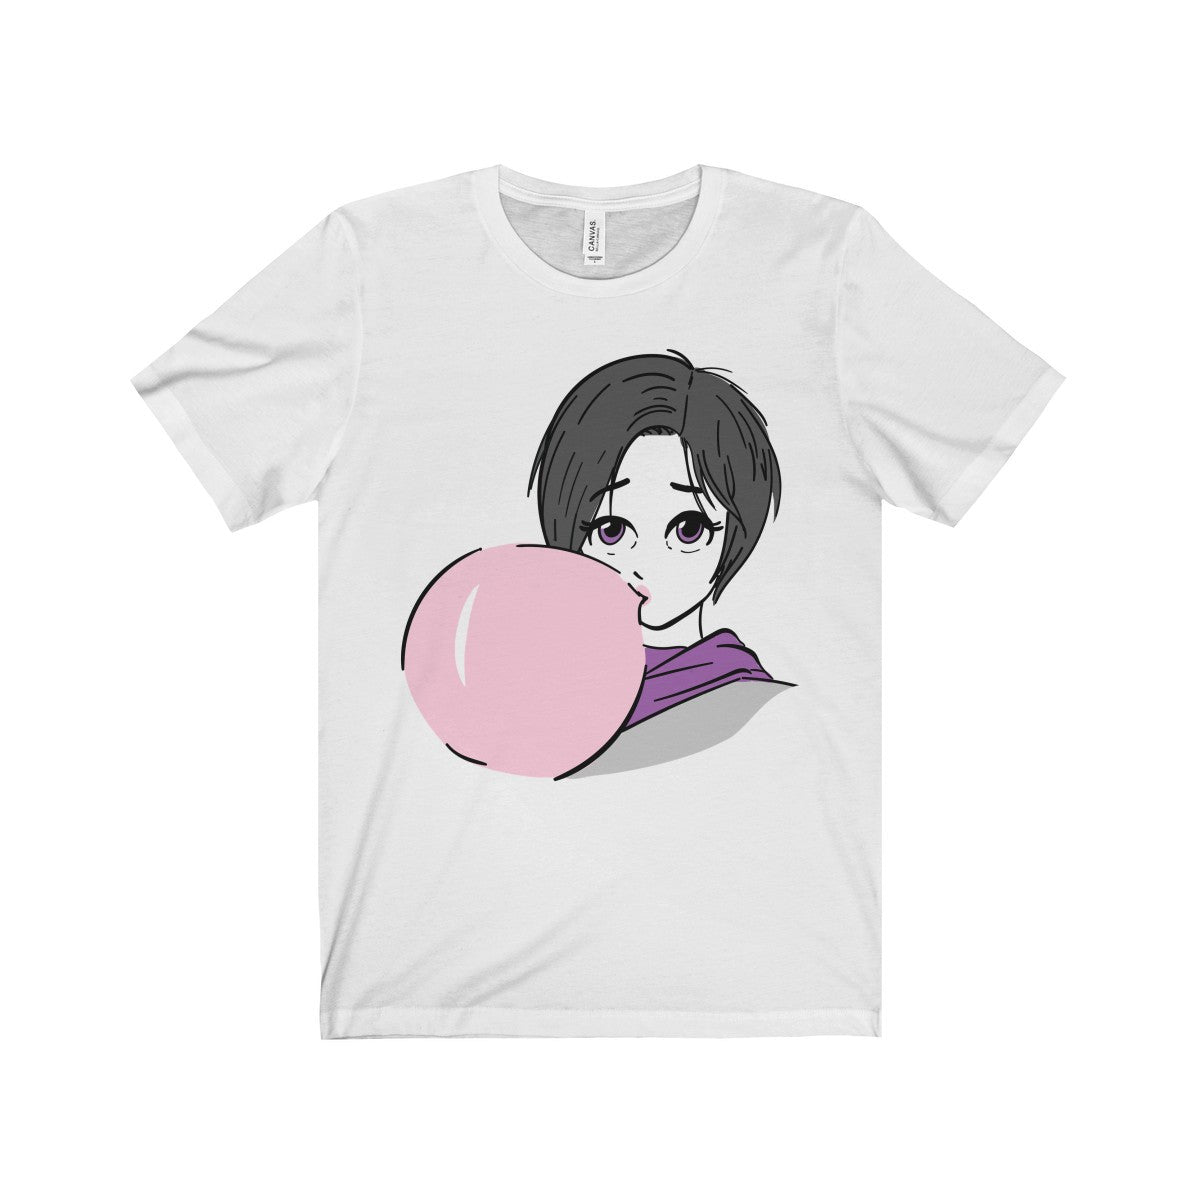 BubbleGum Girl Men's Short Sleeve Tee